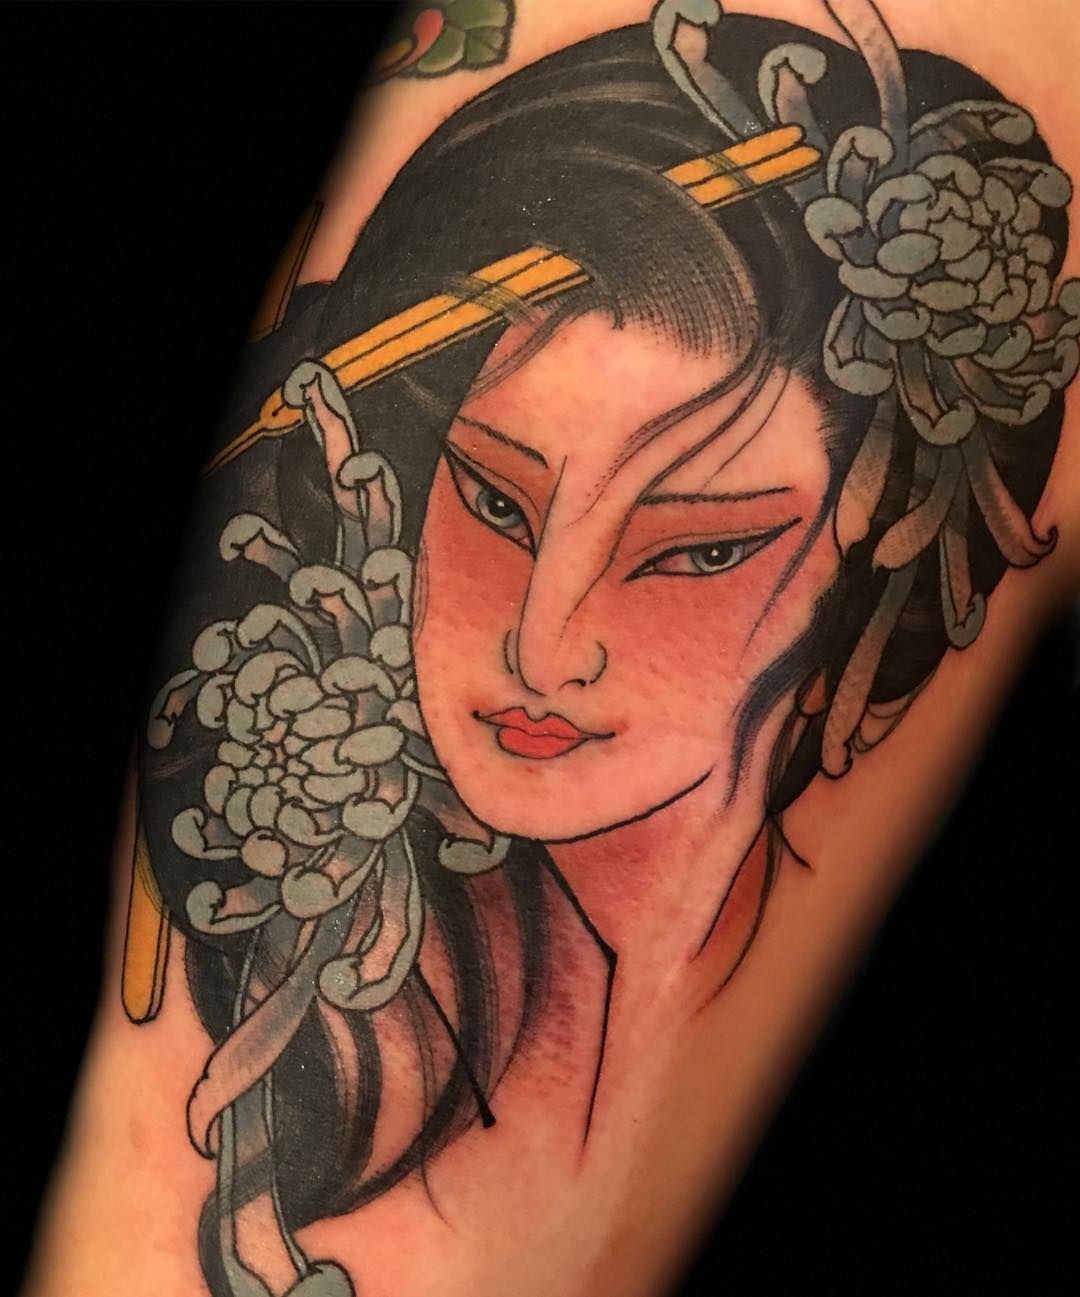 geisha geishas ink inked tattoo tattooed tattoos